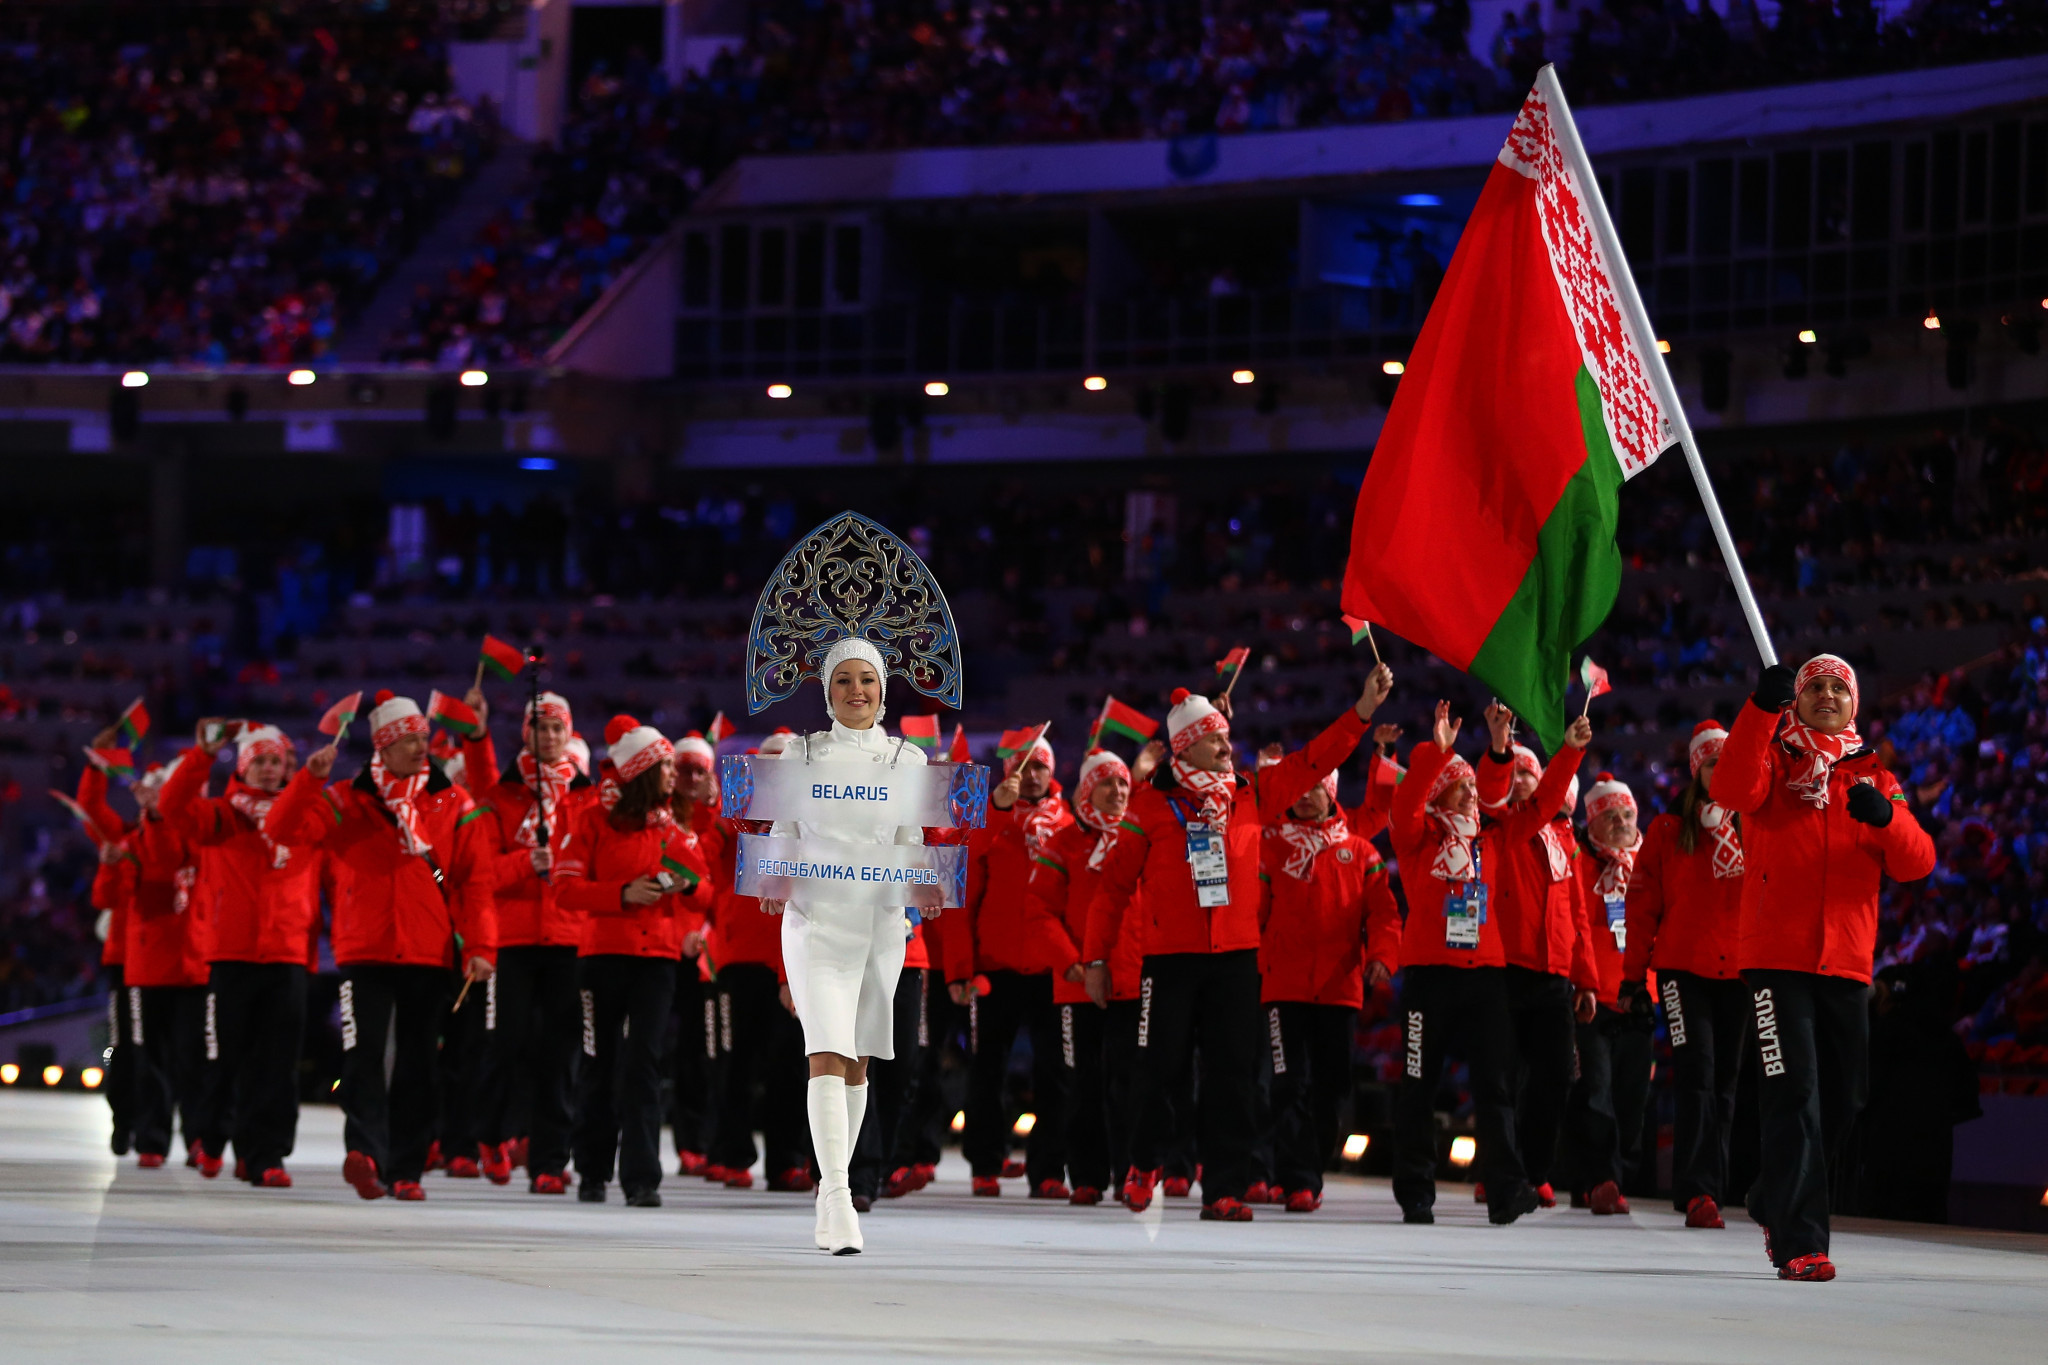 The National Olympic Committee of the Republic of Belarus is alleged to have breached the Olympic Charter ©Getty Images